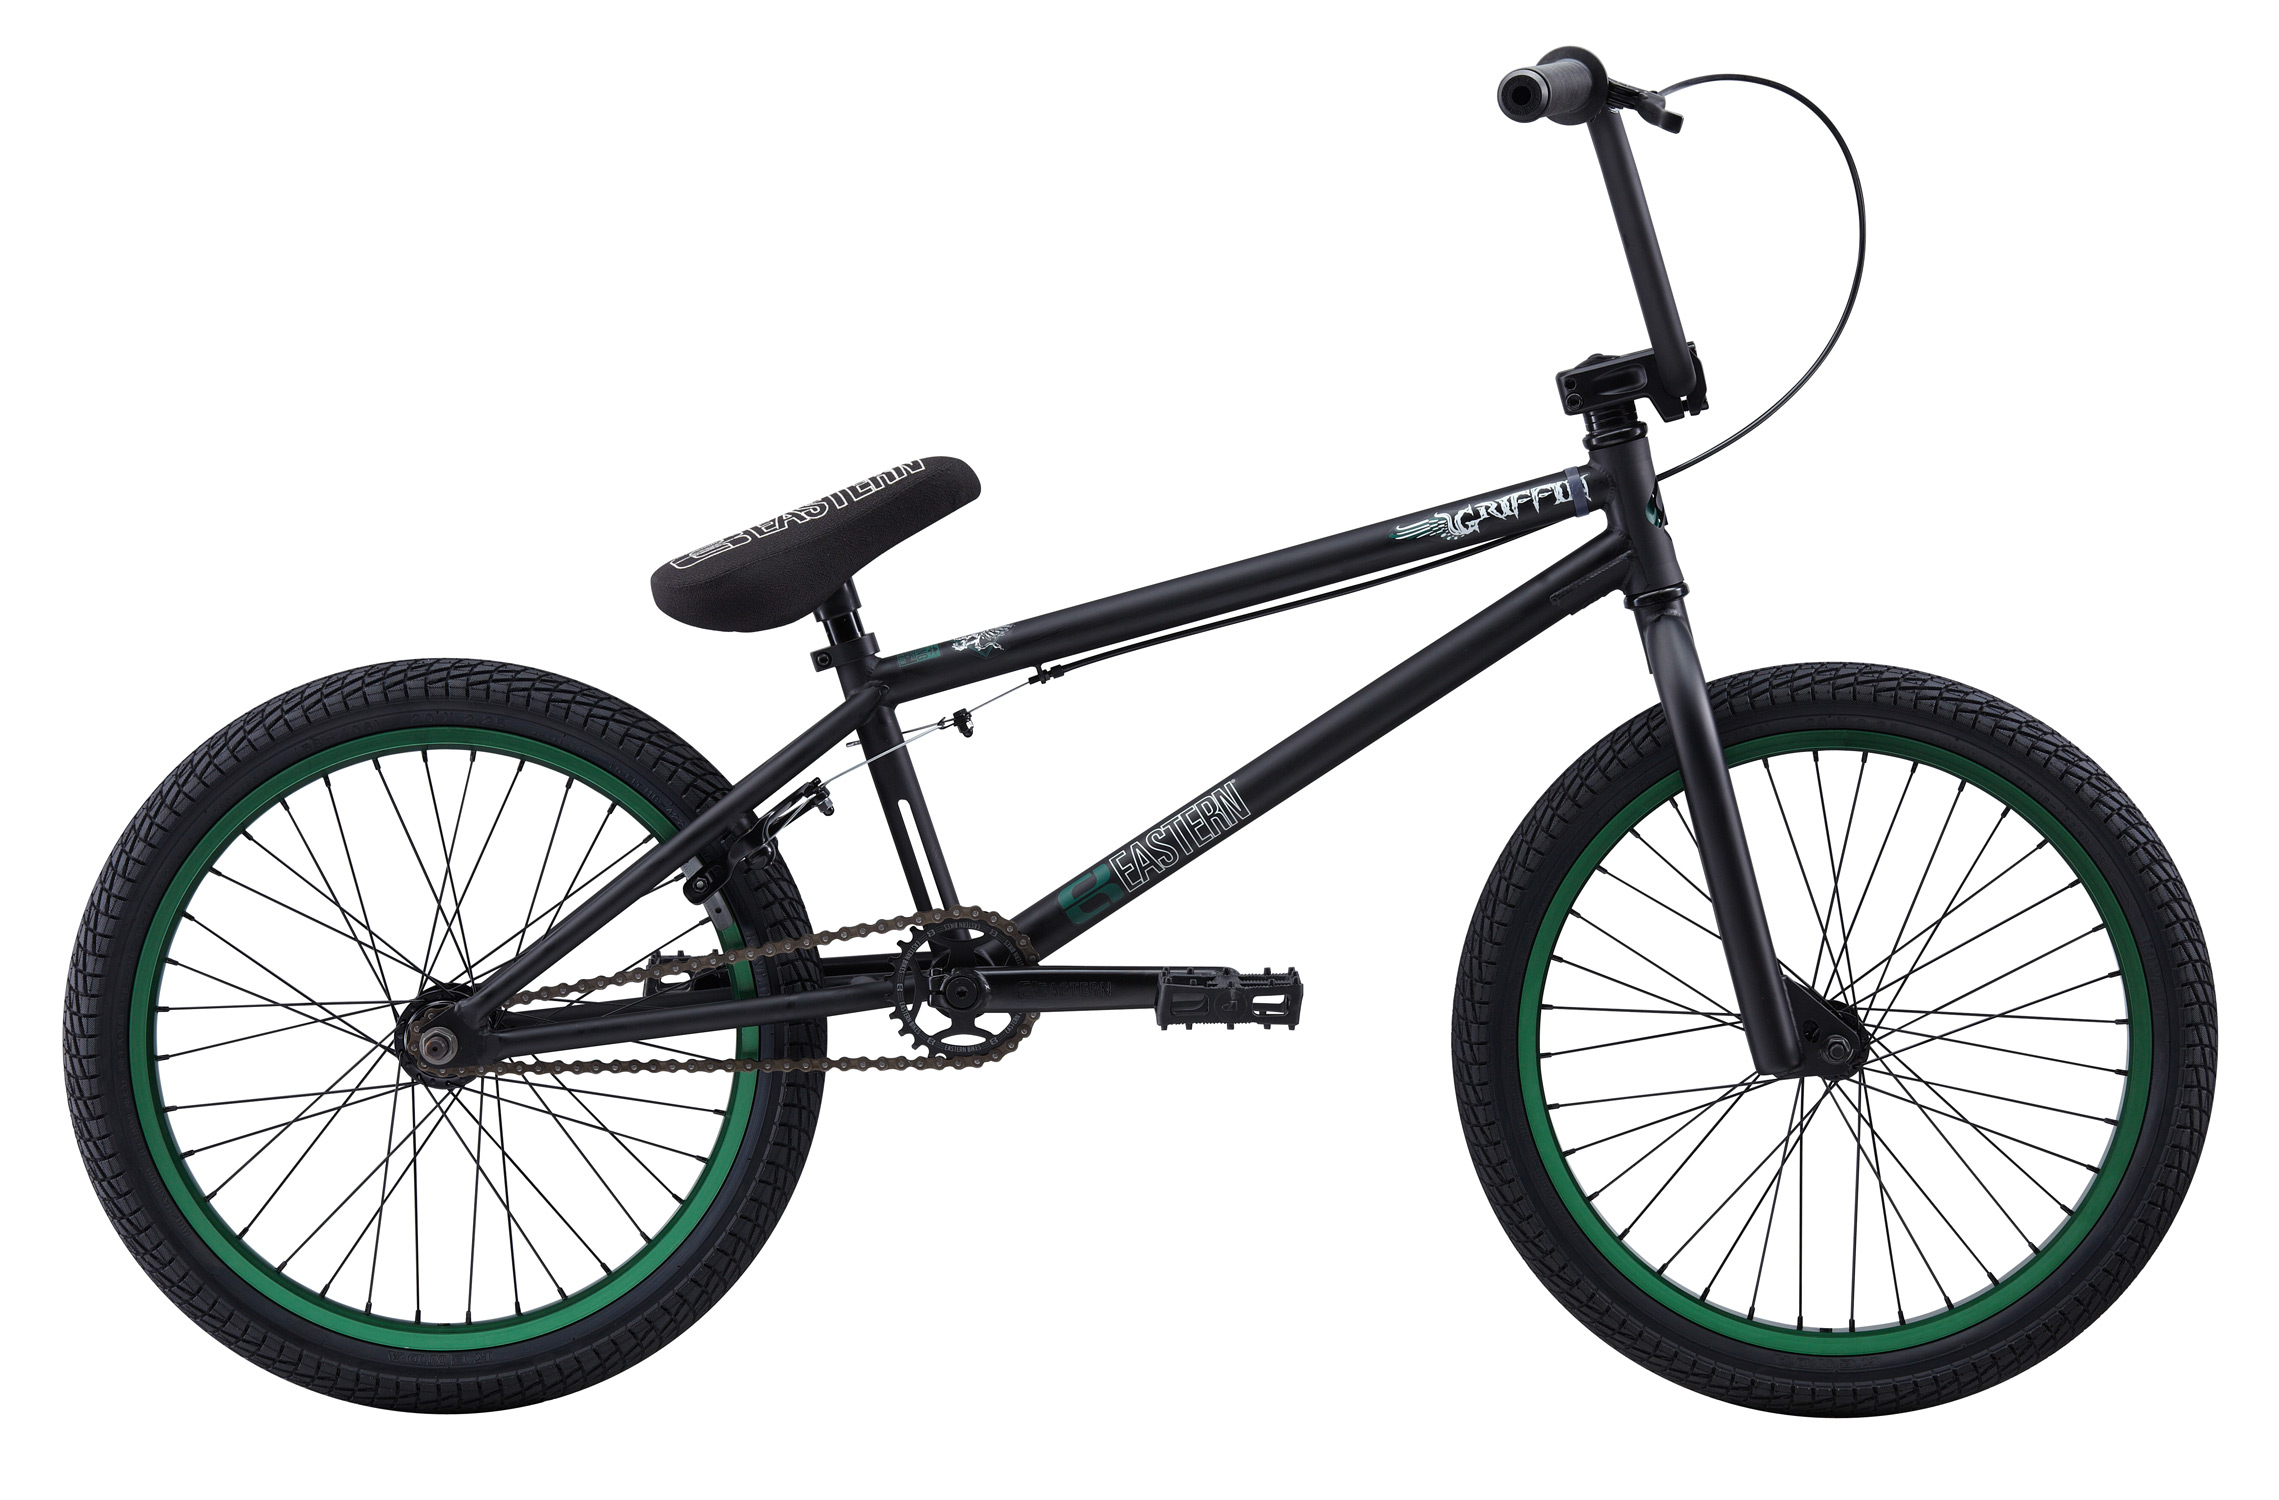 "BMX Key Features of the Eastern Griffin BMX Bike: WEIGHT: 26.1 LBS TOP TUBE SIZE: 21"" COLORS : Matte Black/Green, Gloss Midnight Purple/Hot Blue GEARING: 25/9 Micro-drive FRAME: Griffin frame w/ 4130 chromoly downtube, mid BB & replaceable brake mounts, cable stop & gyro tabs. Eastern Promise: lifetime warranty*, lifetime upgrade policy** FORK: Eastern Full 4130 Chromoly w/ Tapered Legs & Hangfree Dropout Design BARS: 8.25""x 28.5"" , 1"" Upsweep, 12"" Backsweep HEADSET: 1-1/8"" Aheadset BB: Sealed Bearing, Mid Bottom Bracket PEDALS: VP Components Plastic Platform Pedals GRIPS: Velo Mushroom Grip* STEM: Forged Alloy Front Load SPROCKET: Eastern Phorcys 25T steel CRANKS: Tubular chromoly heat-treated 3pc. cranks with 8 spline spindle SEAT: Eastern logo 1pc. seat and alloy post combo, Durable Nylon Cover, and Stitched Logo SEATPOST: Alloy post included with seat TIRES: Multi-Surface , 20"" x 2.35"" ** *** FRONT HUB: Sealed Bearing, 36 hole Alloy Shell, 3/8"" Chromoly axle REAR HUB: Fully Sealed 36 hole cassette hub, Forged Alloy Shell, 1pc. 9-tooth chromoly driver, 14mm chromoly axle, 5 sealed bearings. RIMS: REAR-Double Wall Alloy, 36 Hole FRONT- Alloy 36 hole REAR BRAKES: Tektro Forged Alloy U-Brake / Straight Cable / Forged Alloy lever, Designed for U-Brakes FREEWHEEL: Sealed bearing 9-tooth 1pc. driver CHAIN: KMC SEAT CLAMP: Nitrous Locker Forged Alloy Clamp PEGS: 2 pegs - $379.99"